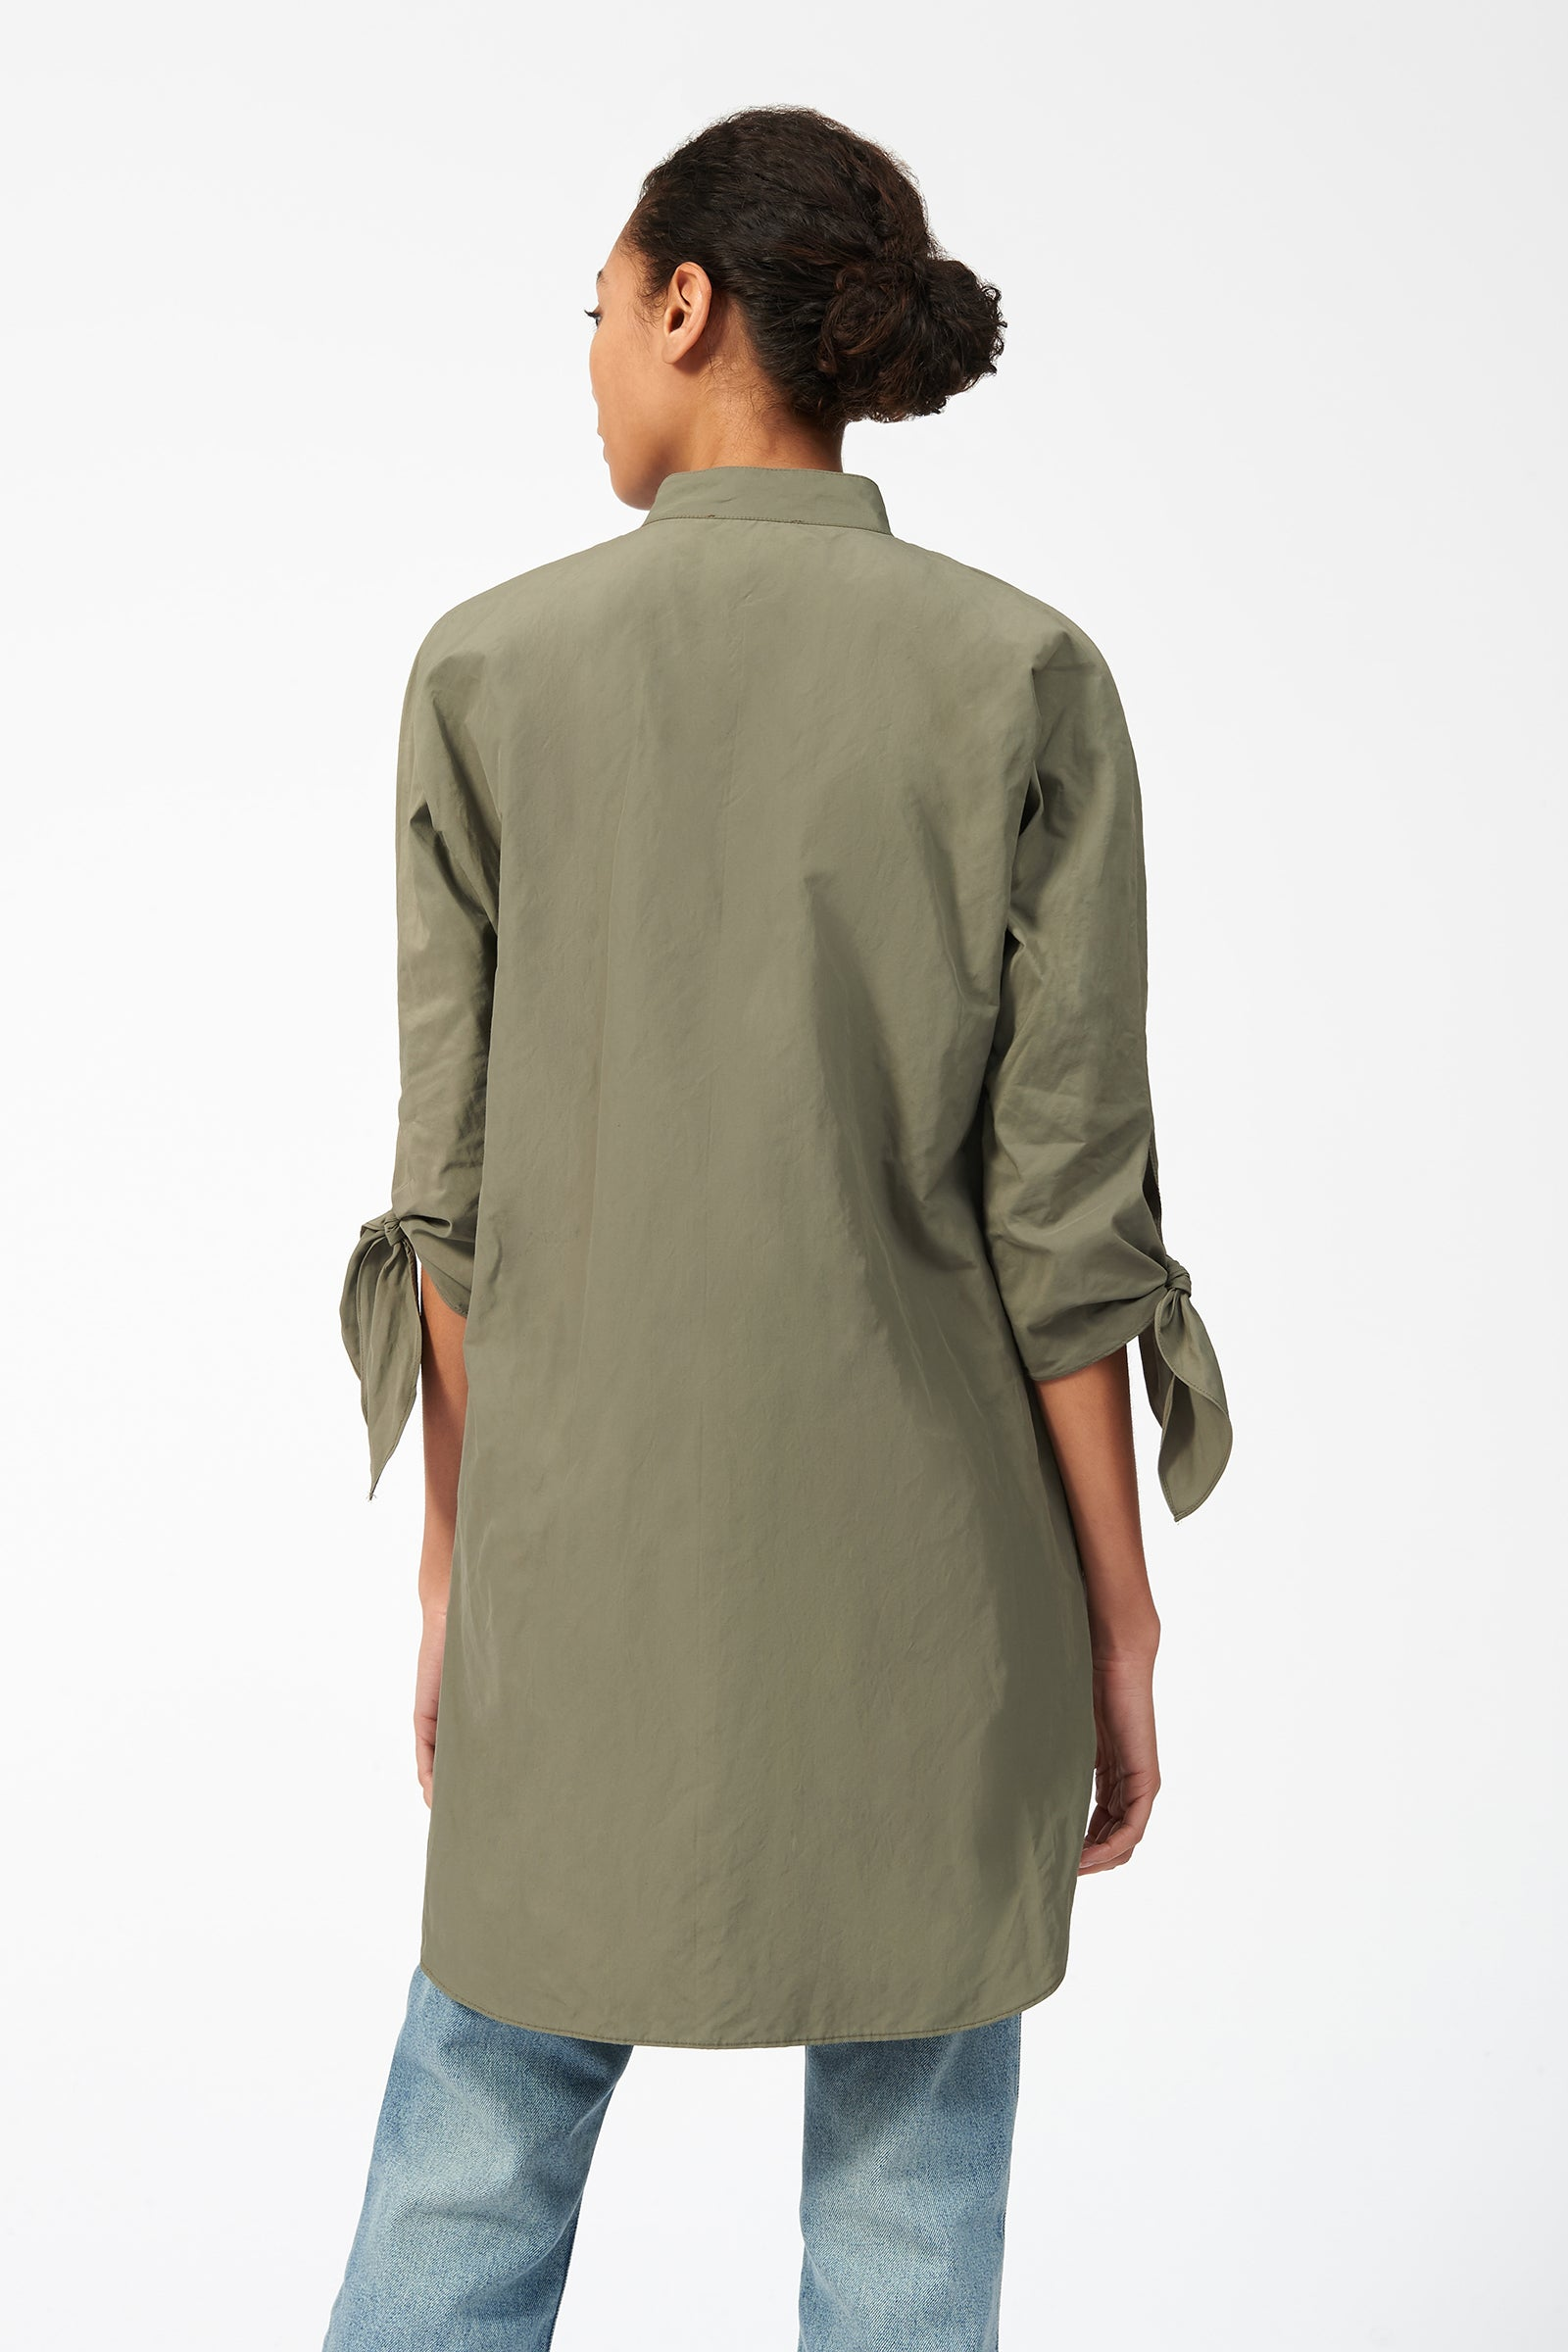 Kal Rieman Tie Sleeve Tunic in Olive on Model Front View